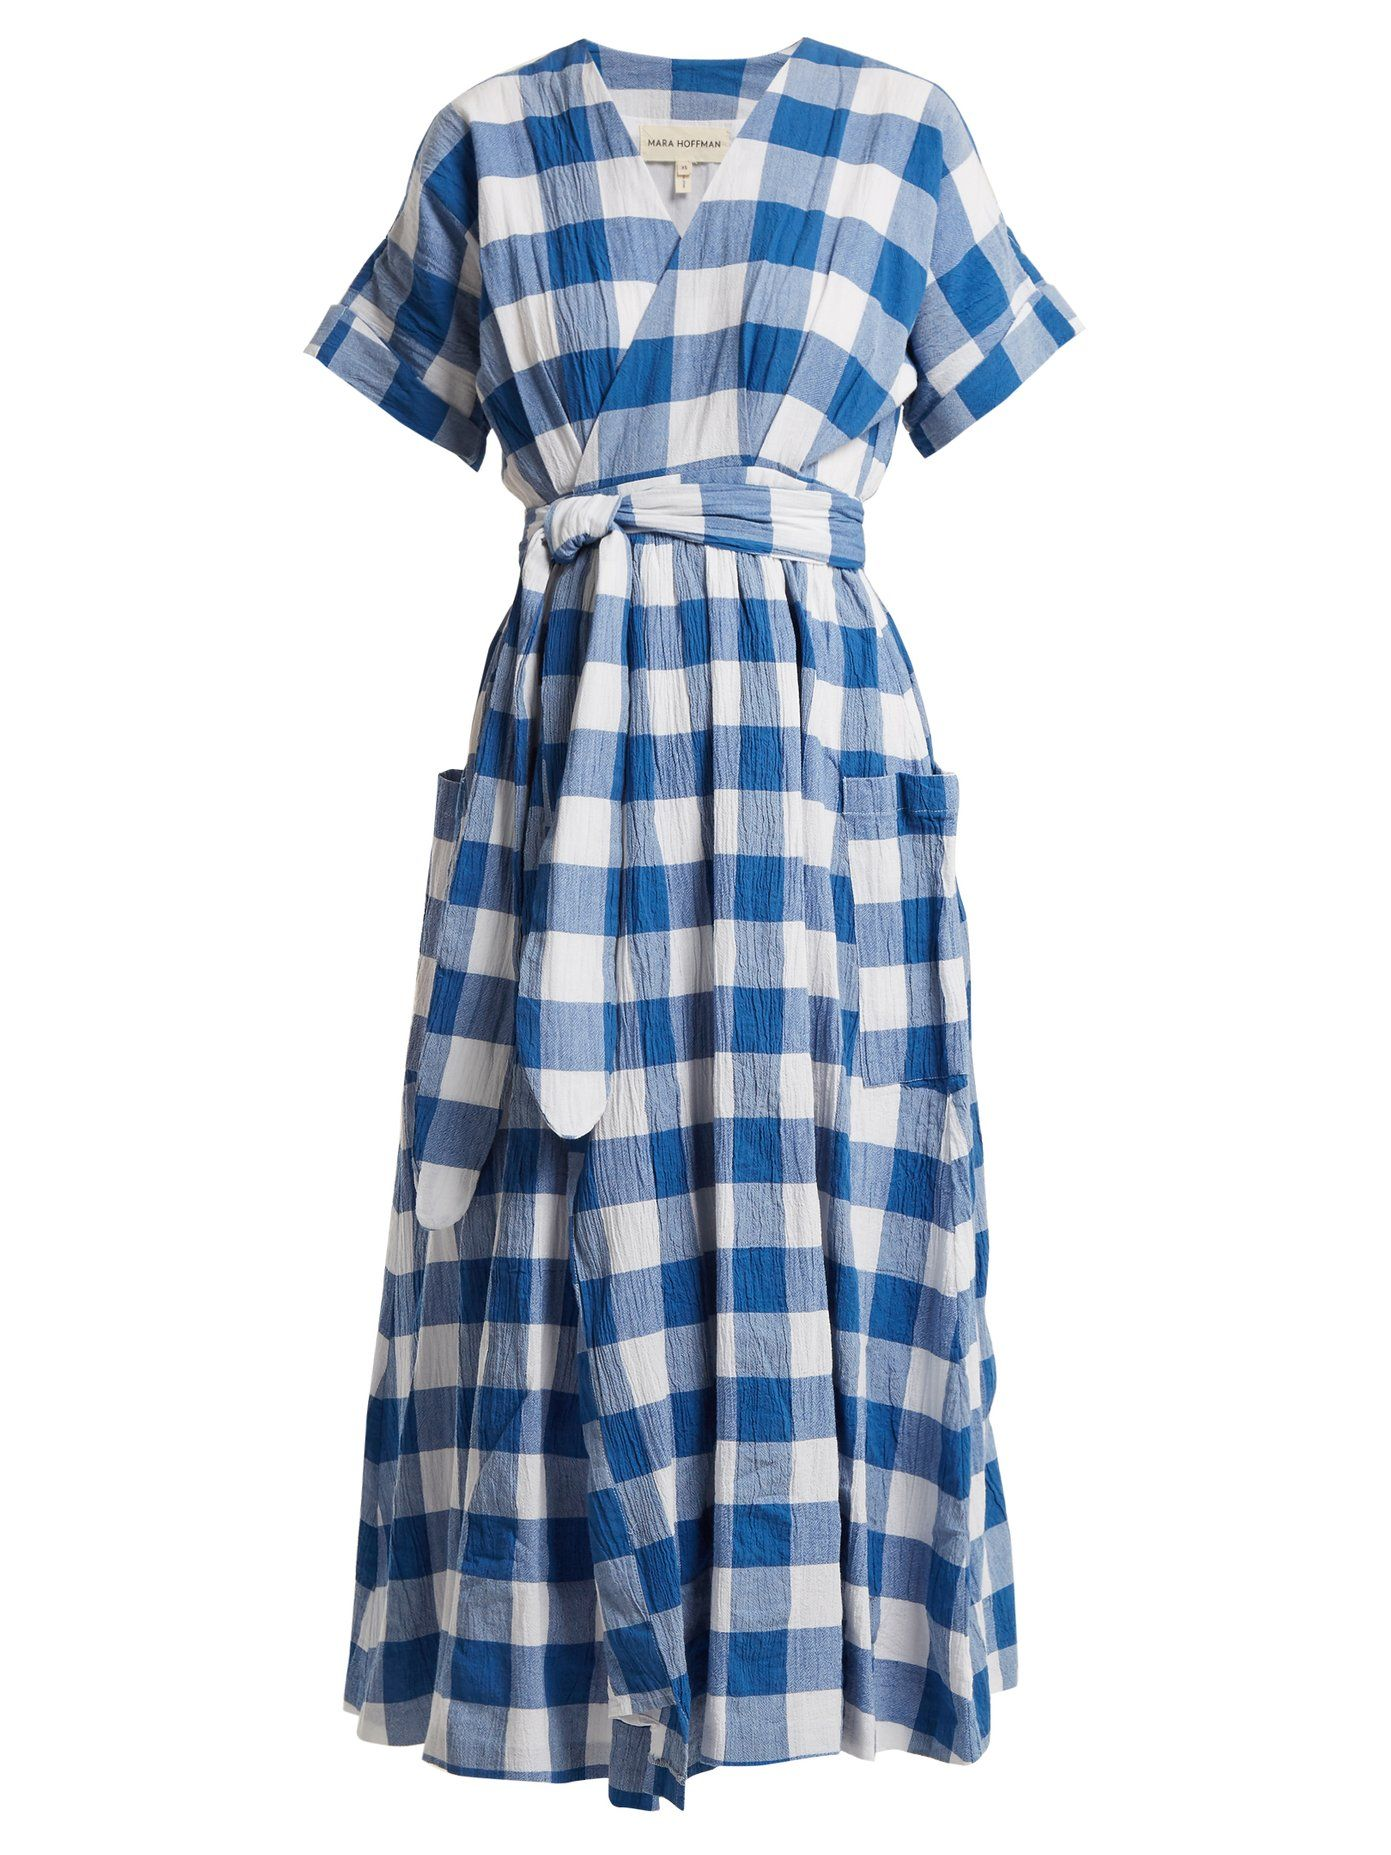 Footlocker Pictures For Sale Ingrid gingham crinkled-cotton wrap dress Mara Hoffman Cheap Price Discount Authentic nmKftktA